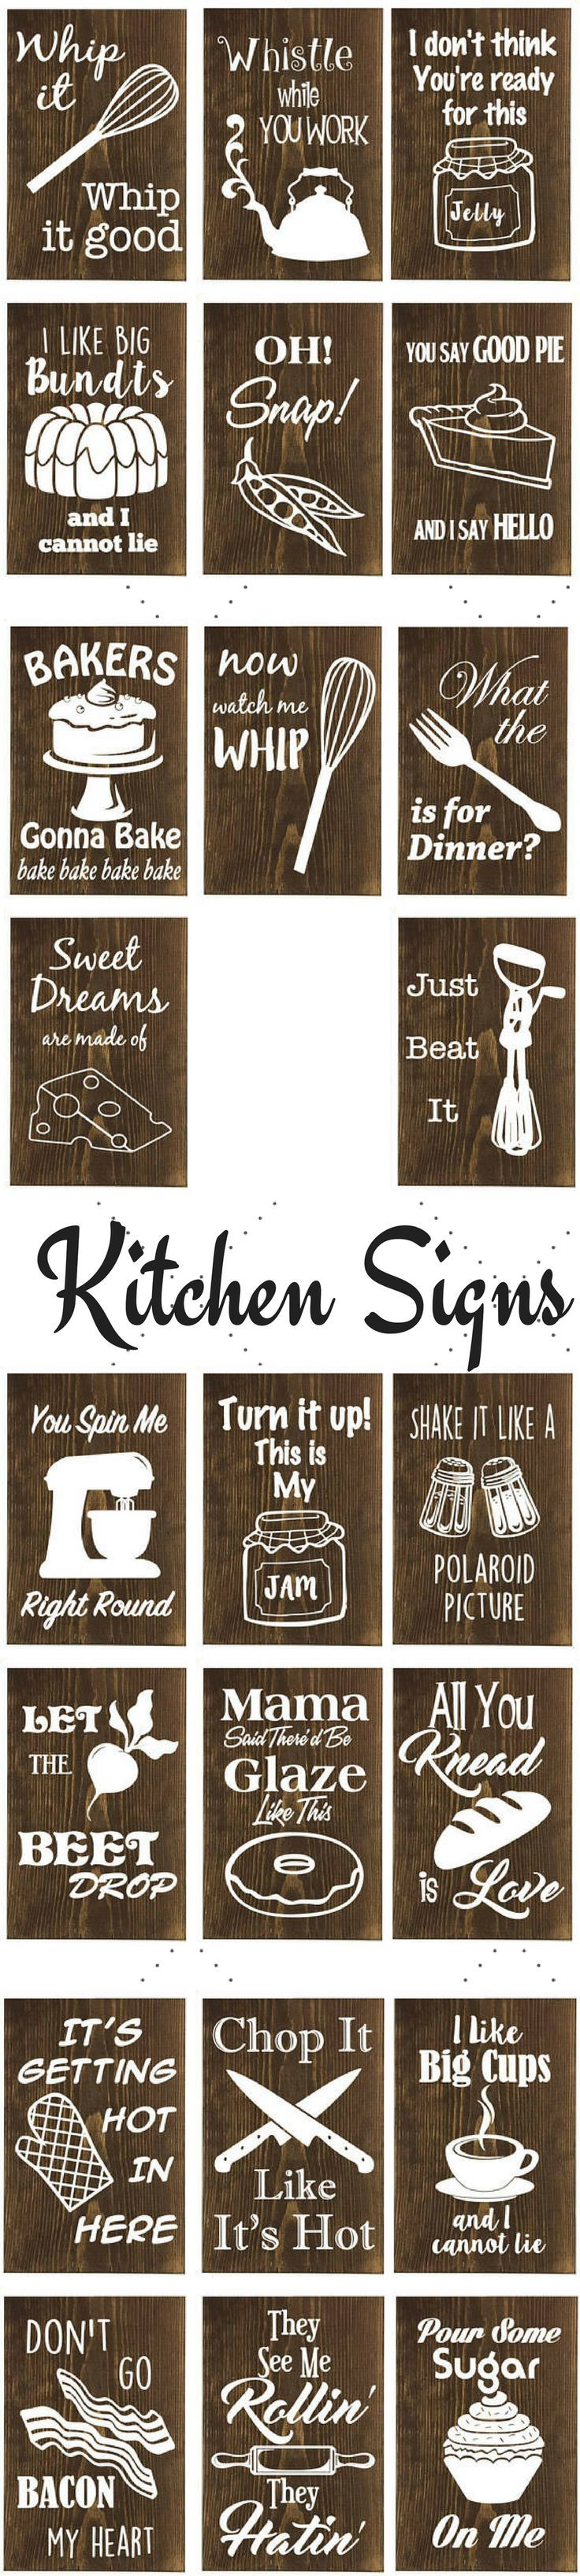 Kitchen Signs For Home Ceiling Paint Decor Wood And Vinyl Punny Funny Clever Baking